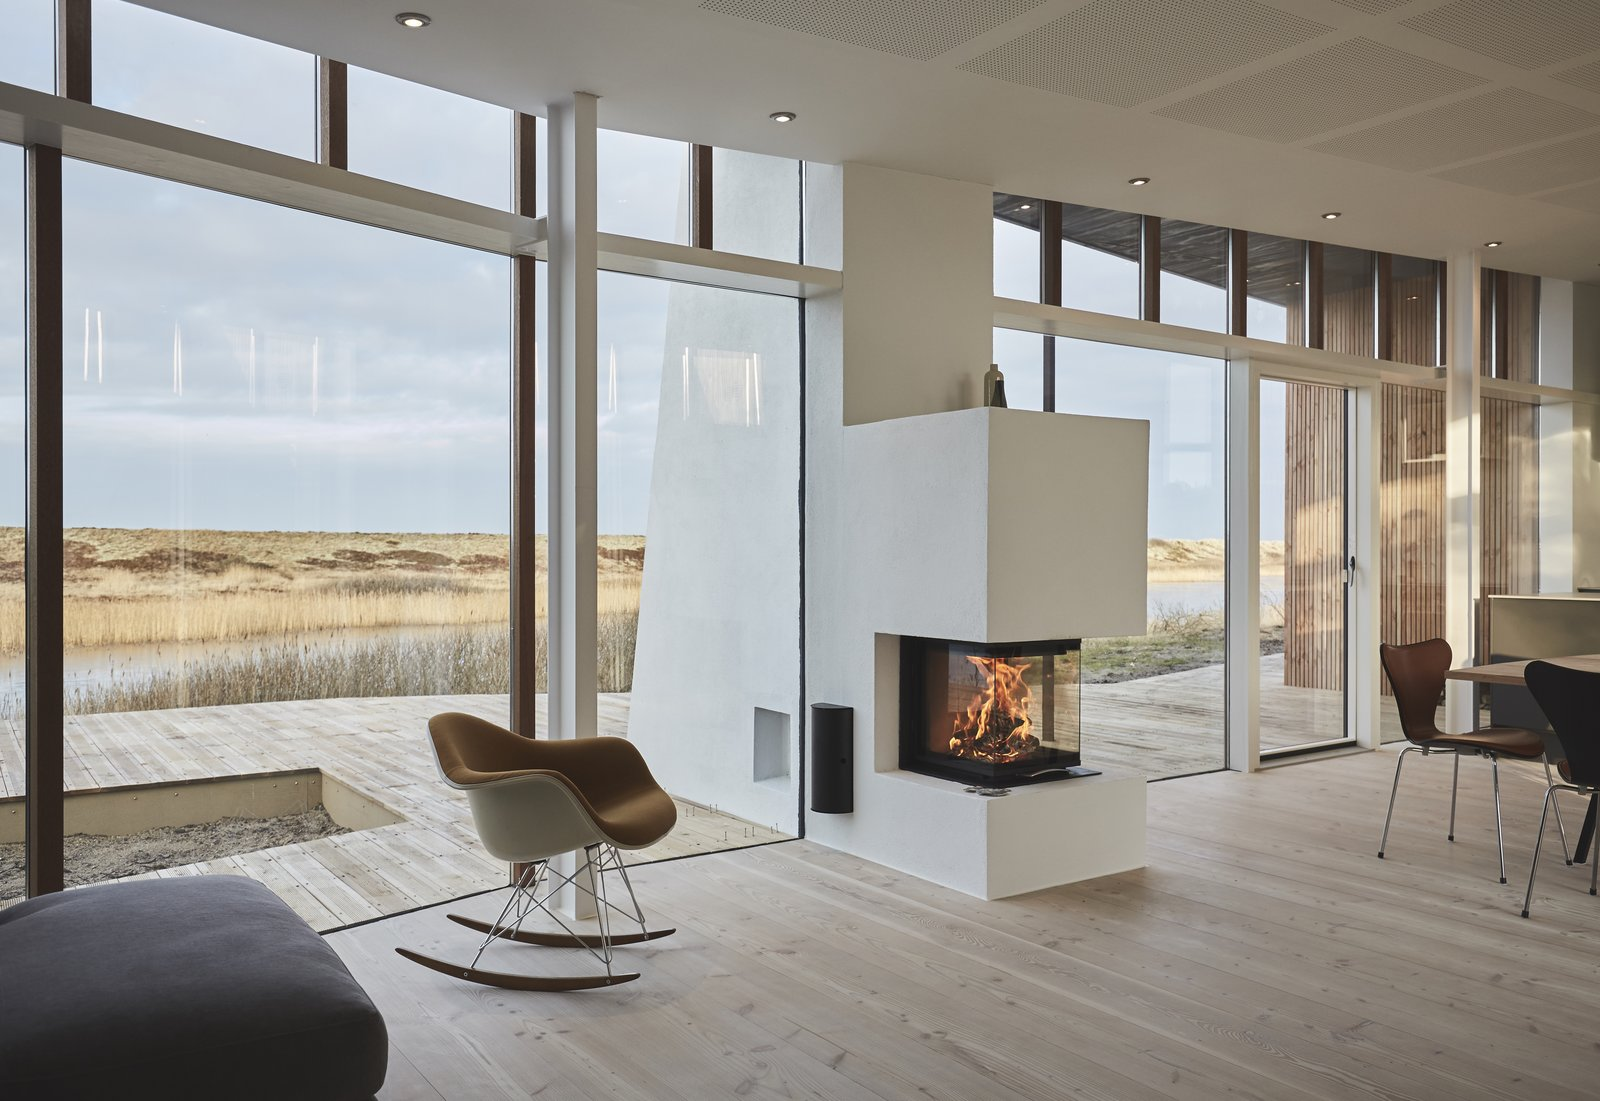 Living Room, Chair, Light Hardwood Floor, Recessed Lighting, and Wood Burning Fireplace This vacation villa is integrated into nature and is surrounded by sand dunes and heathlands.  Photo 1 of 11 in Rent This Danish A-Frame For Your Next Nordic Escape